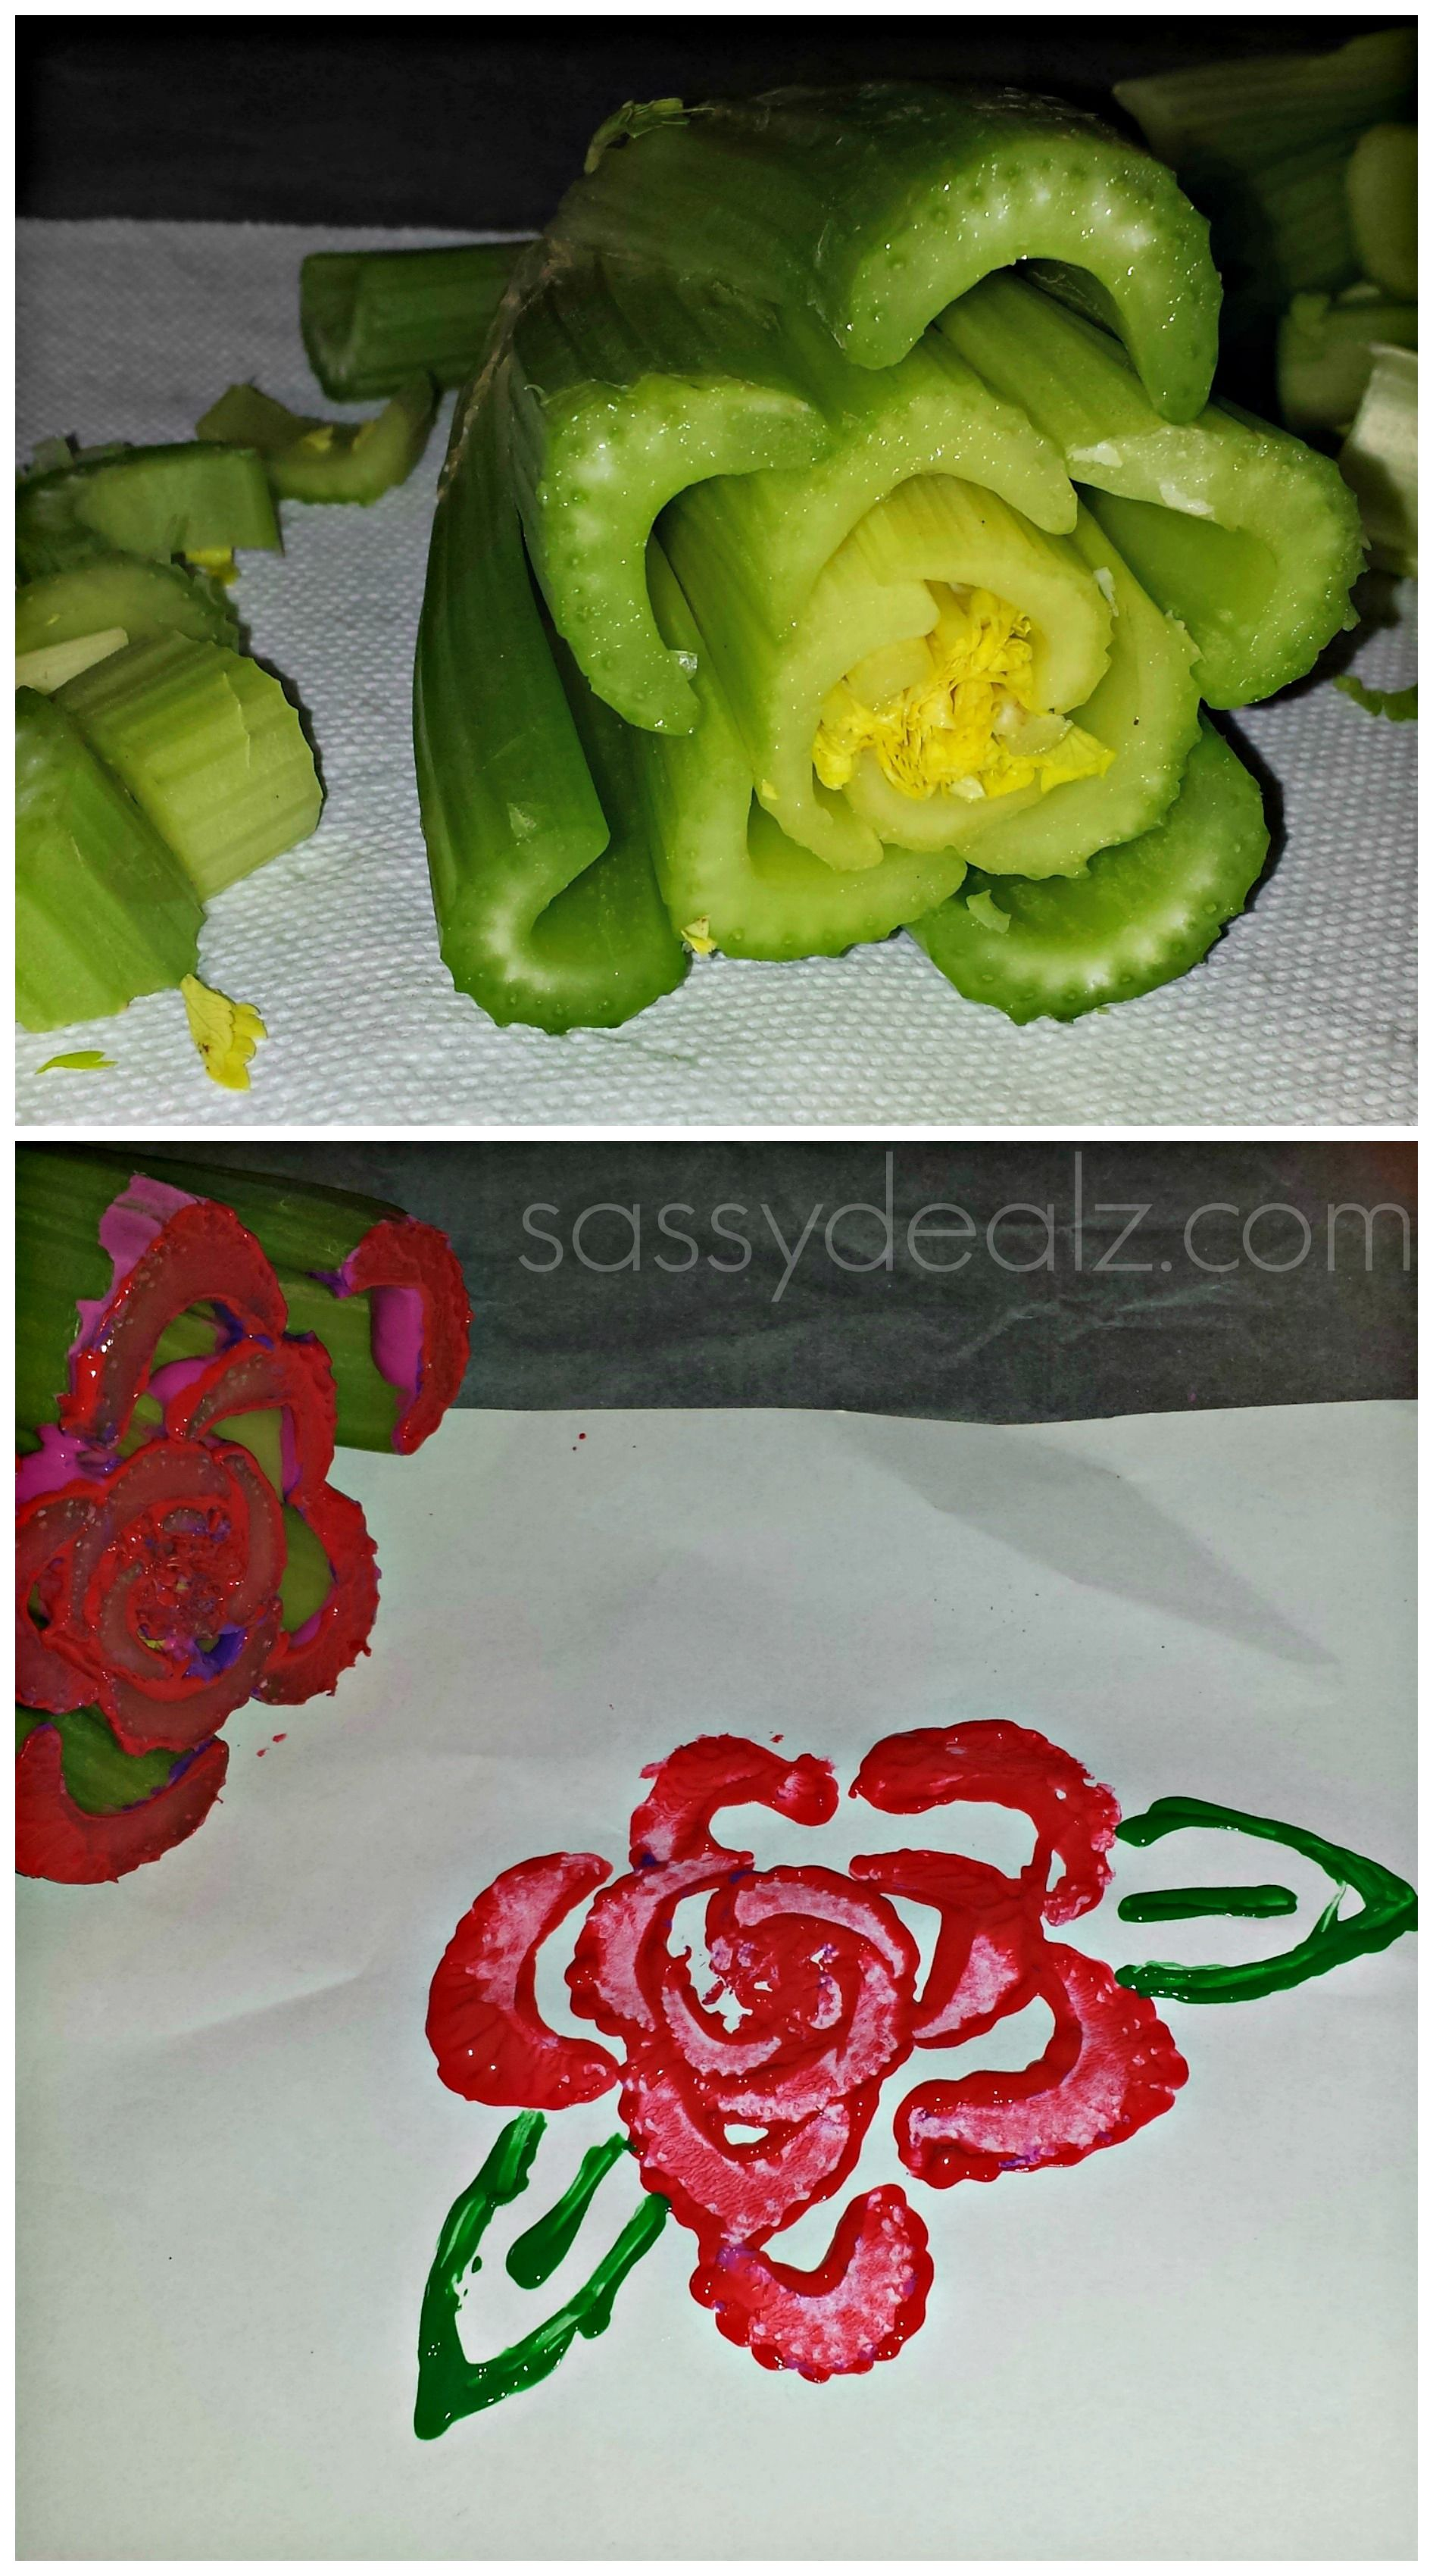 Celery Flower Stamping Craft For Kids Crafty Morning Beauty And The Beast Crafts Crafts For Kids Kids Art Projects